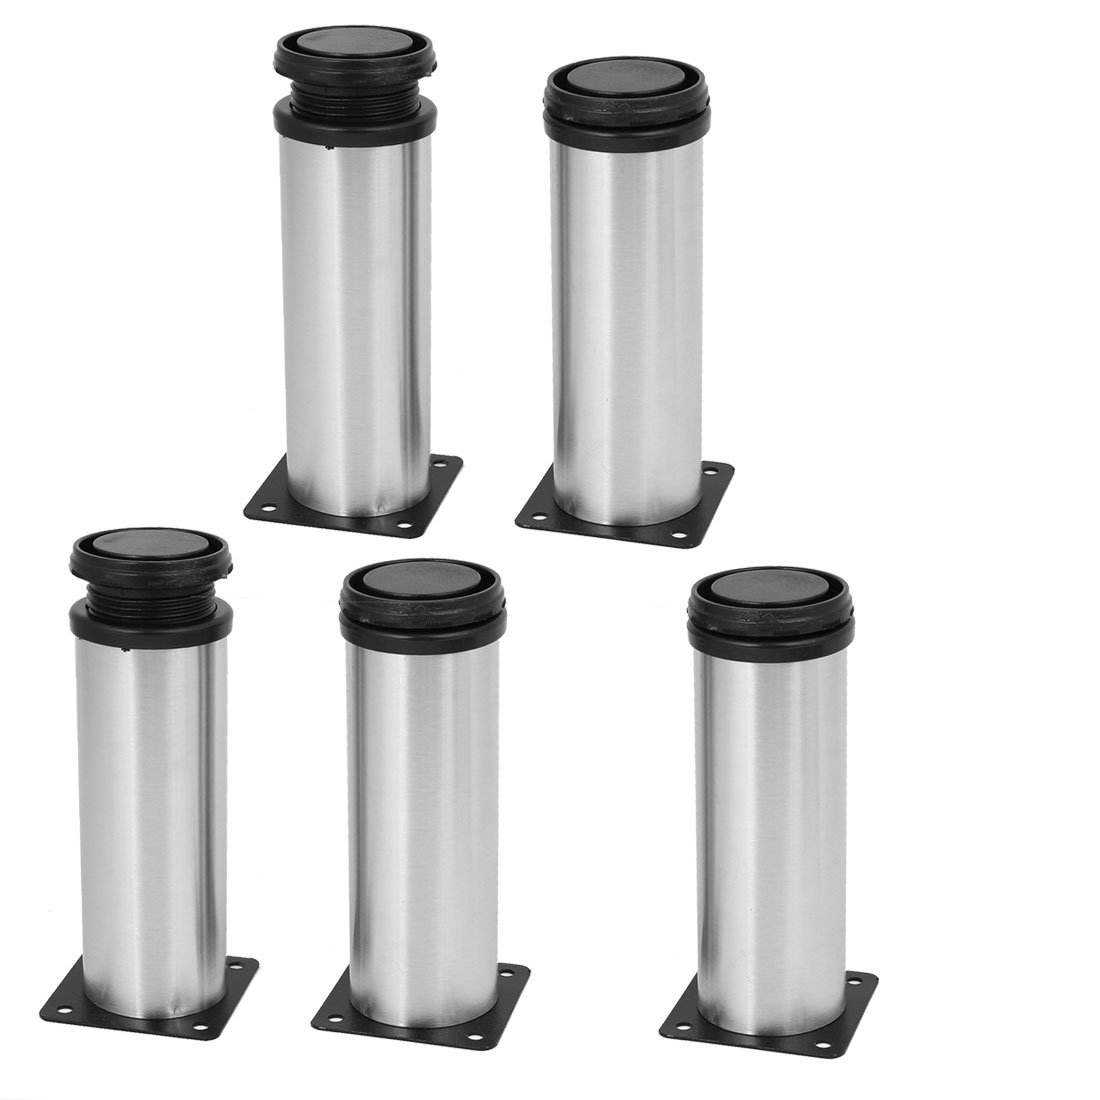 uxcell 50mm x 150mm Metal Adjustable Furniture Cabinet Feet Leg Round Stand 5PCS